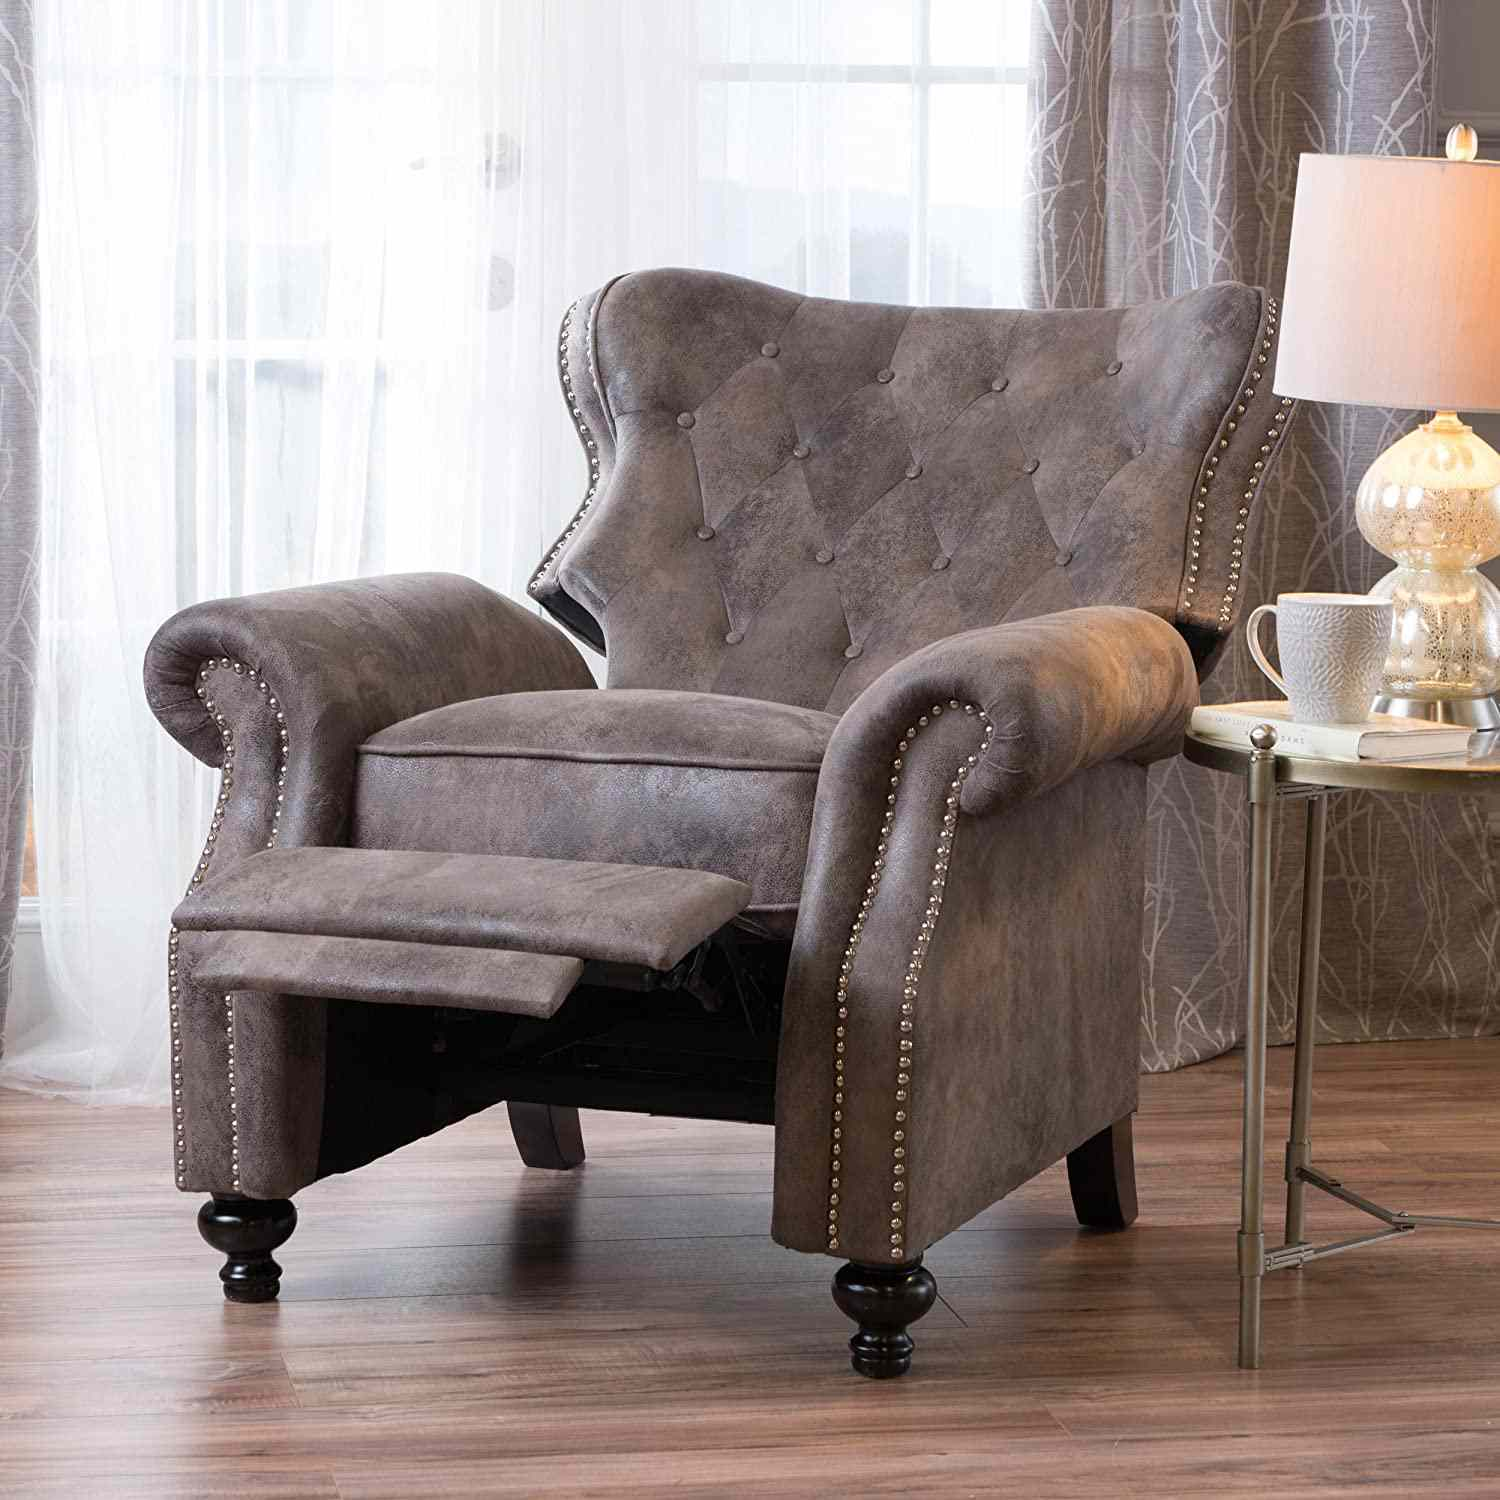 Christopher Knight Home Walder Tufted Wingback Recliner Chair